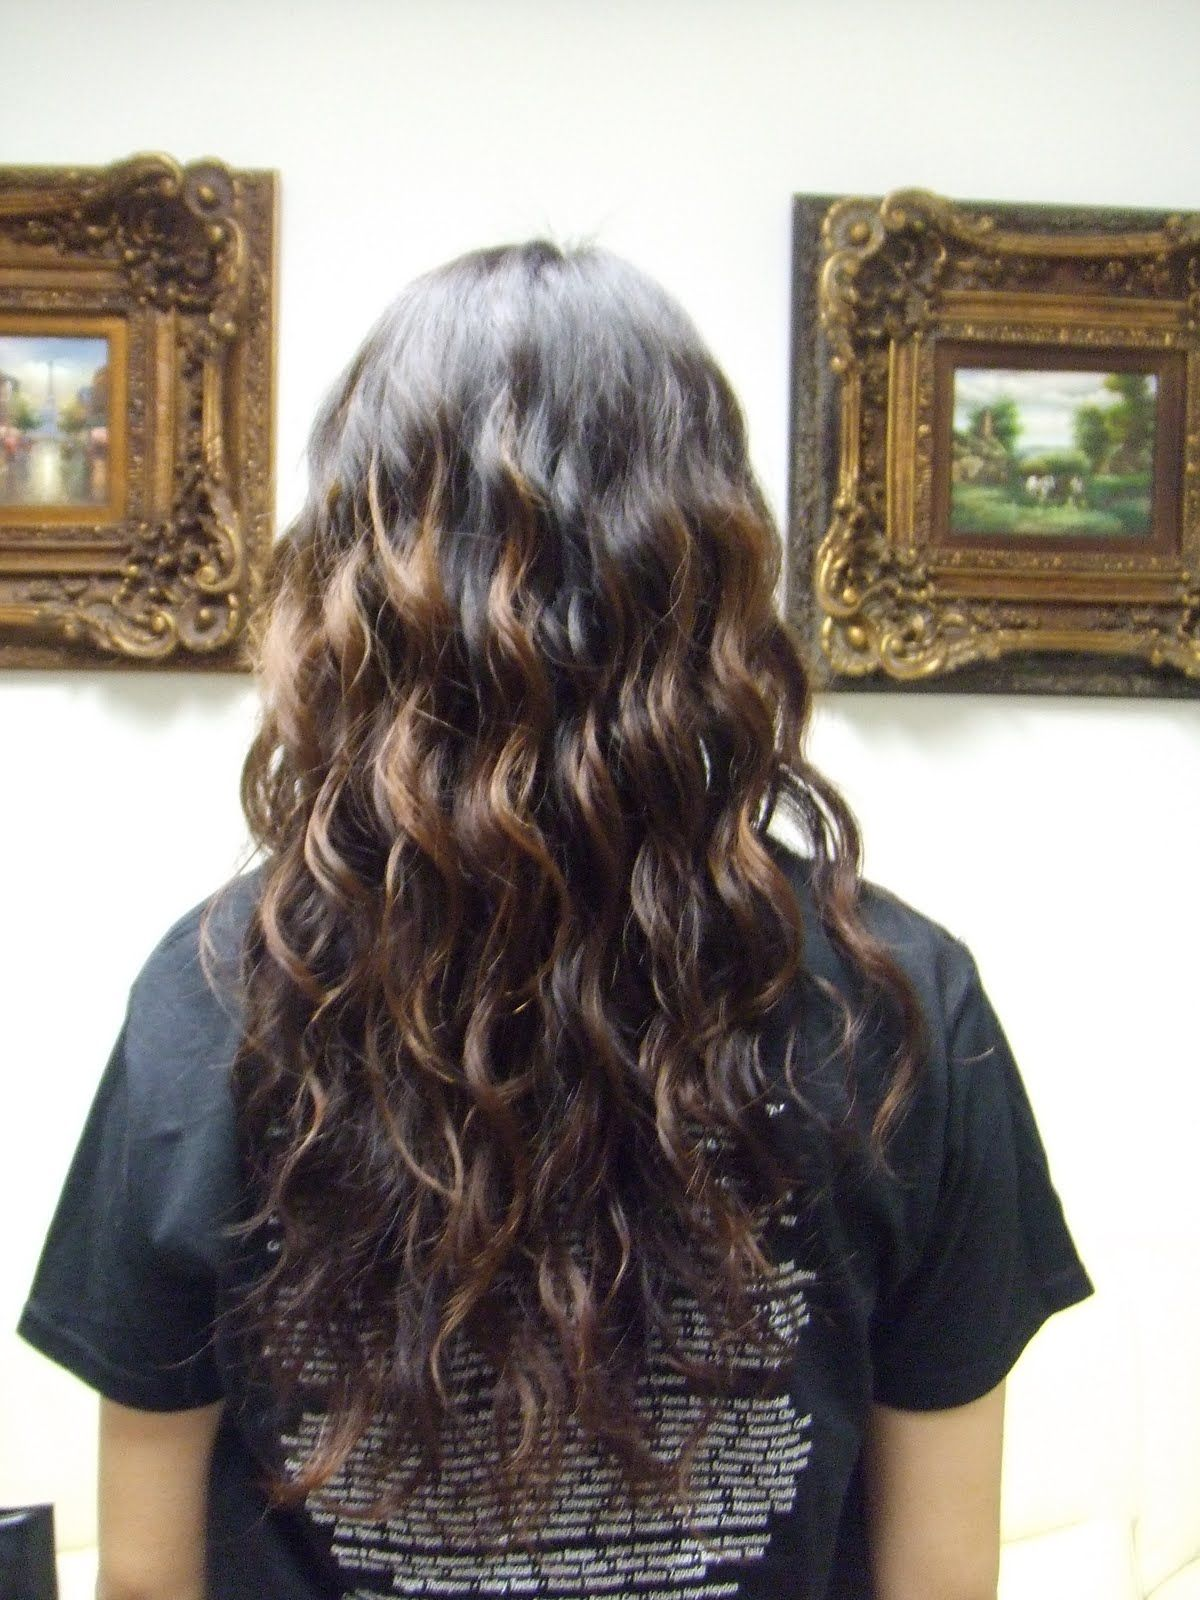 The Beauty Owl Feathers Haircut Before And After Transformation Hair Styles Long Hair Perm Permed Hairstyles